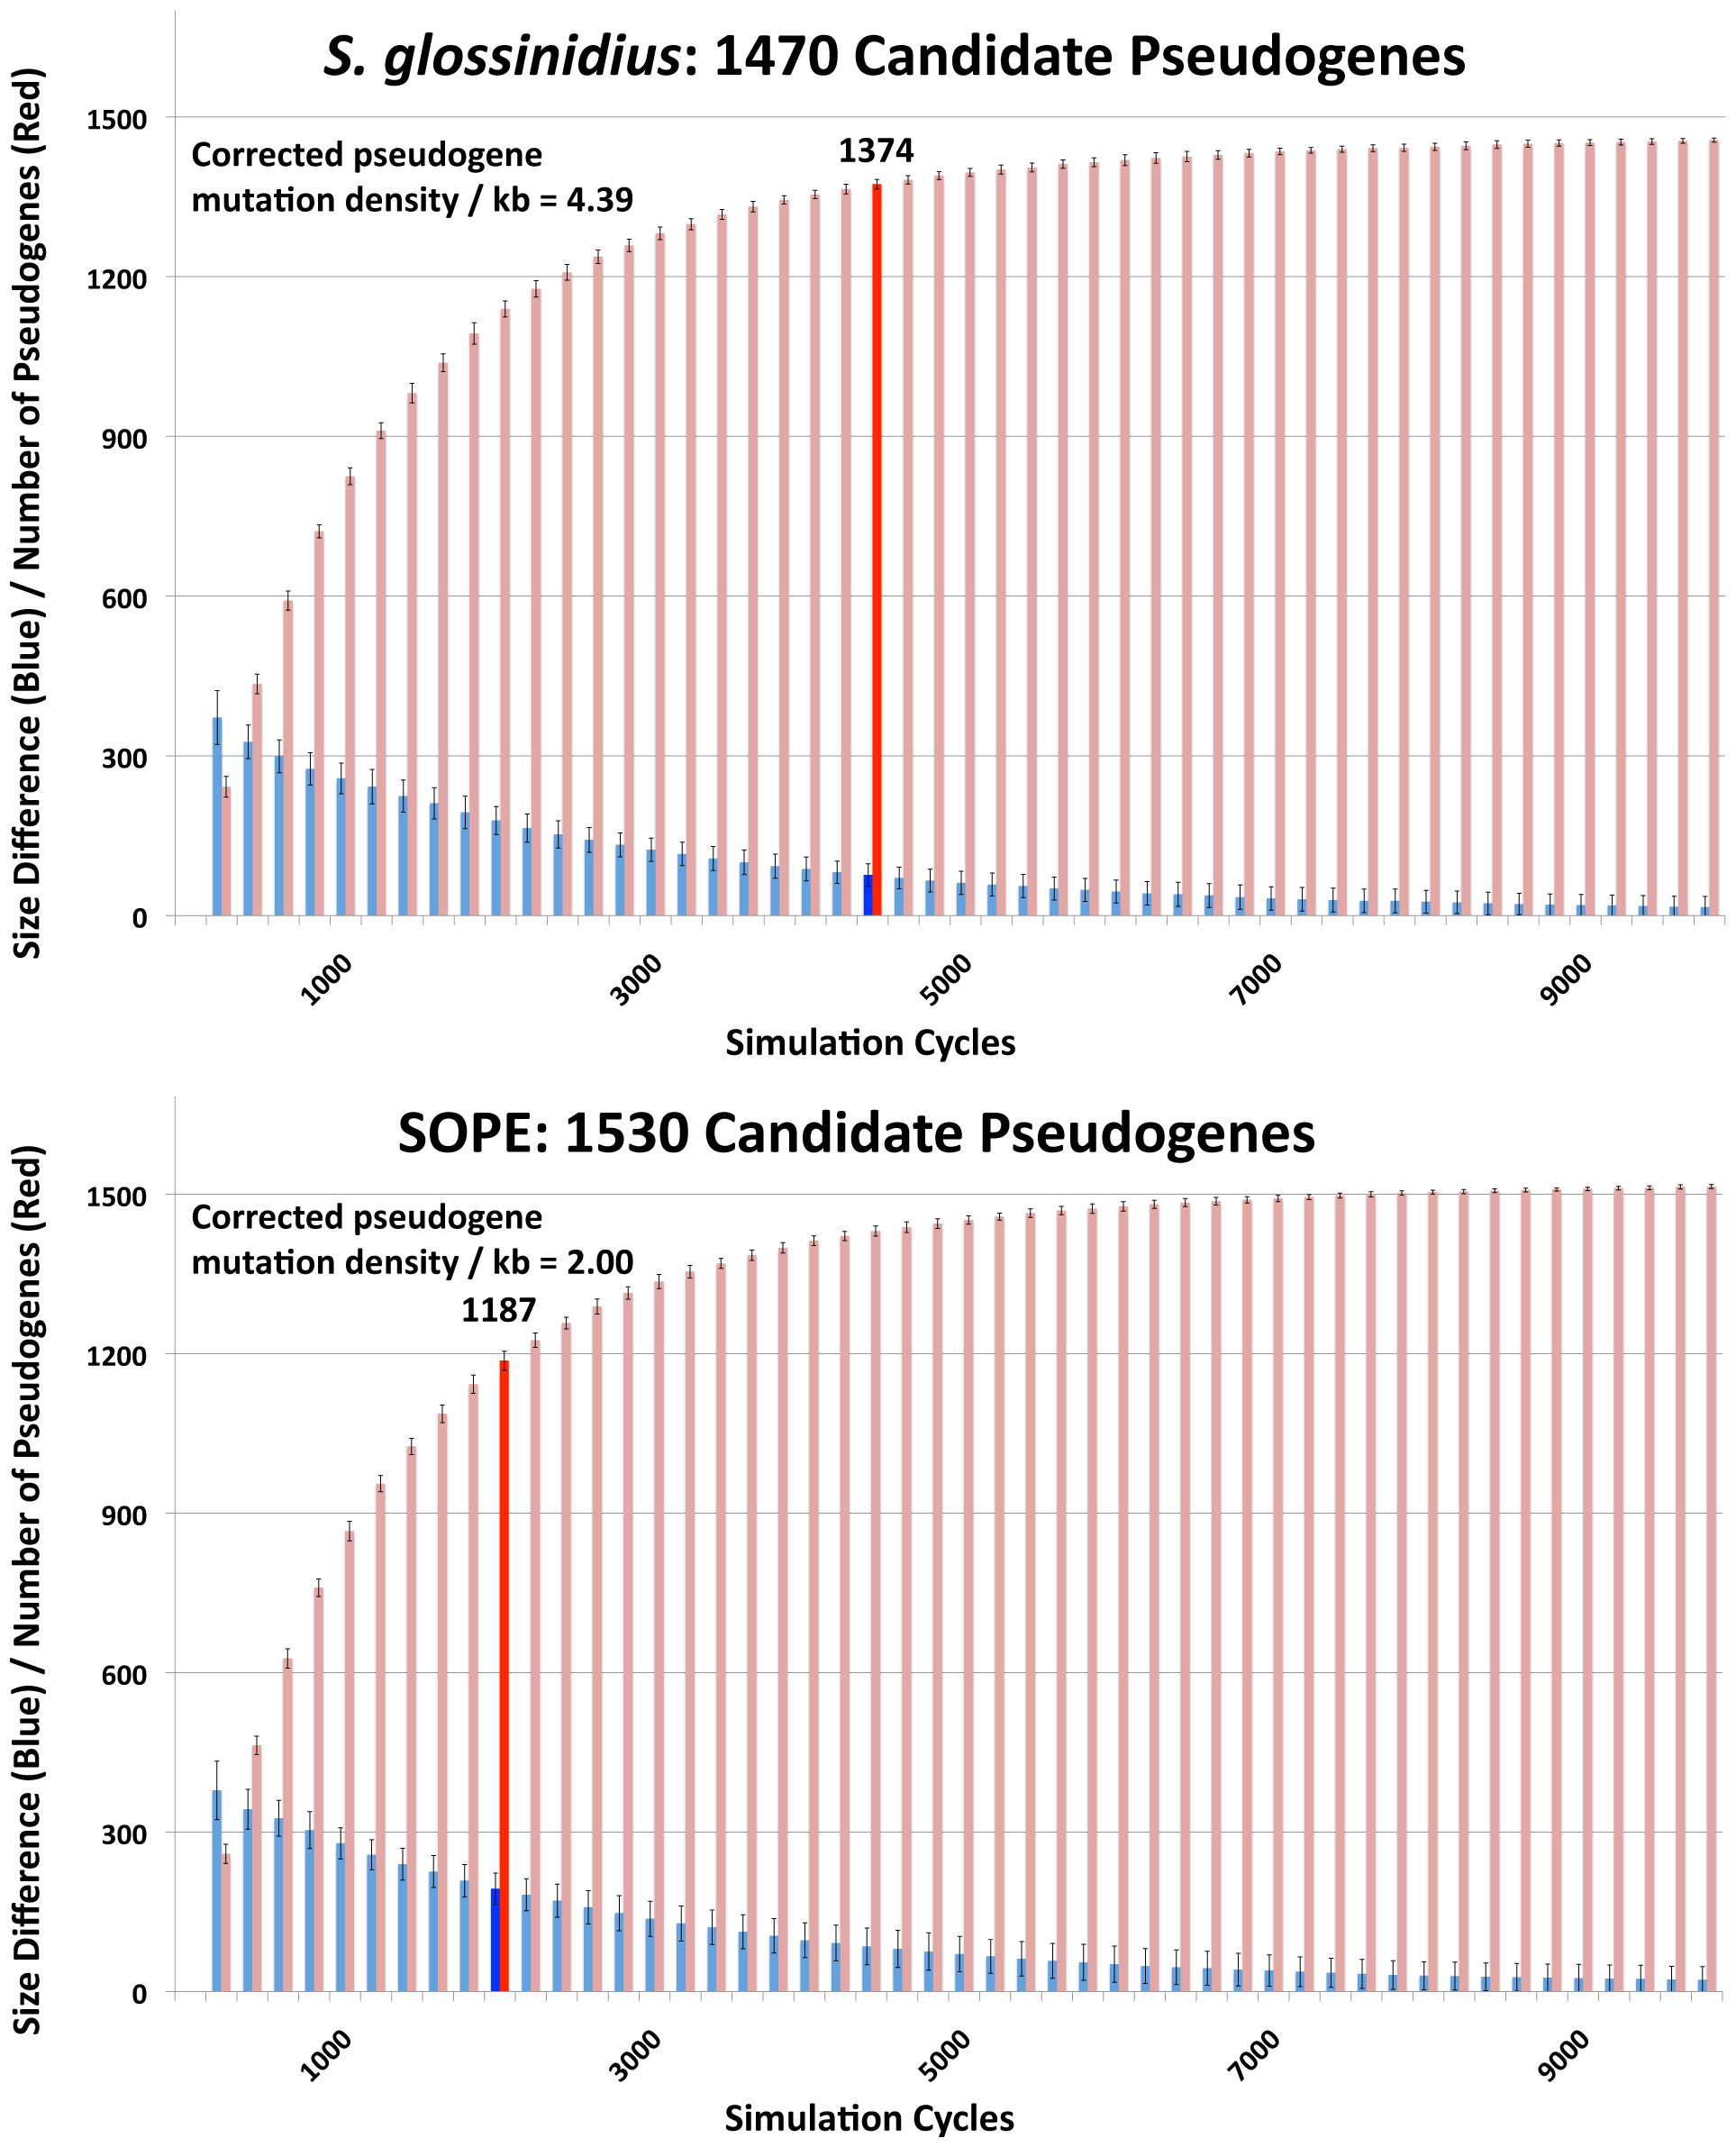 Numbers of cryptic pseudogenes in <i>S. glossinidius</i> and SOPE estimated using a Monte Carlo simulation.